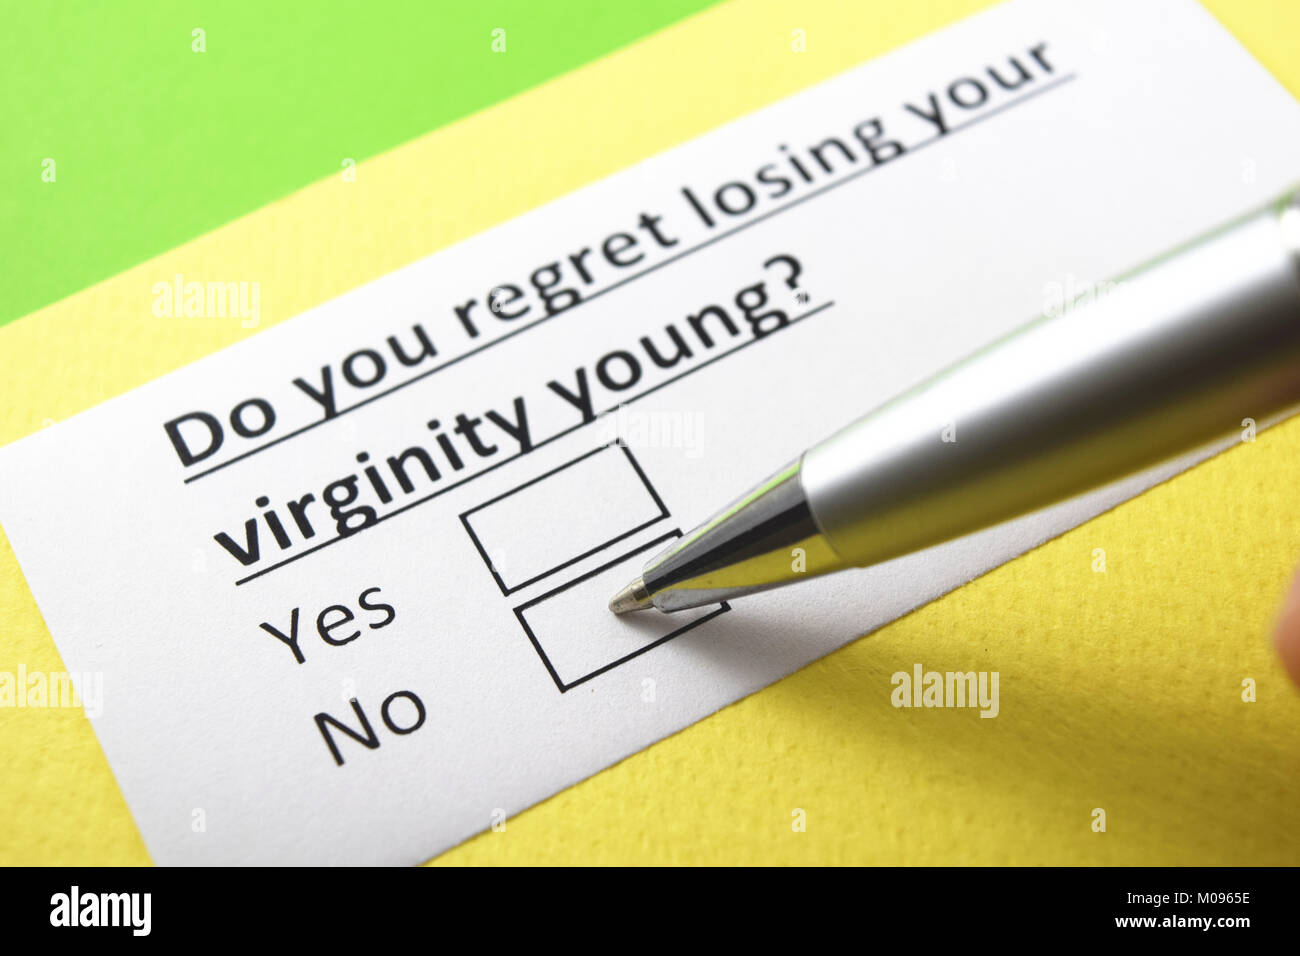 do you regret losing your virginity